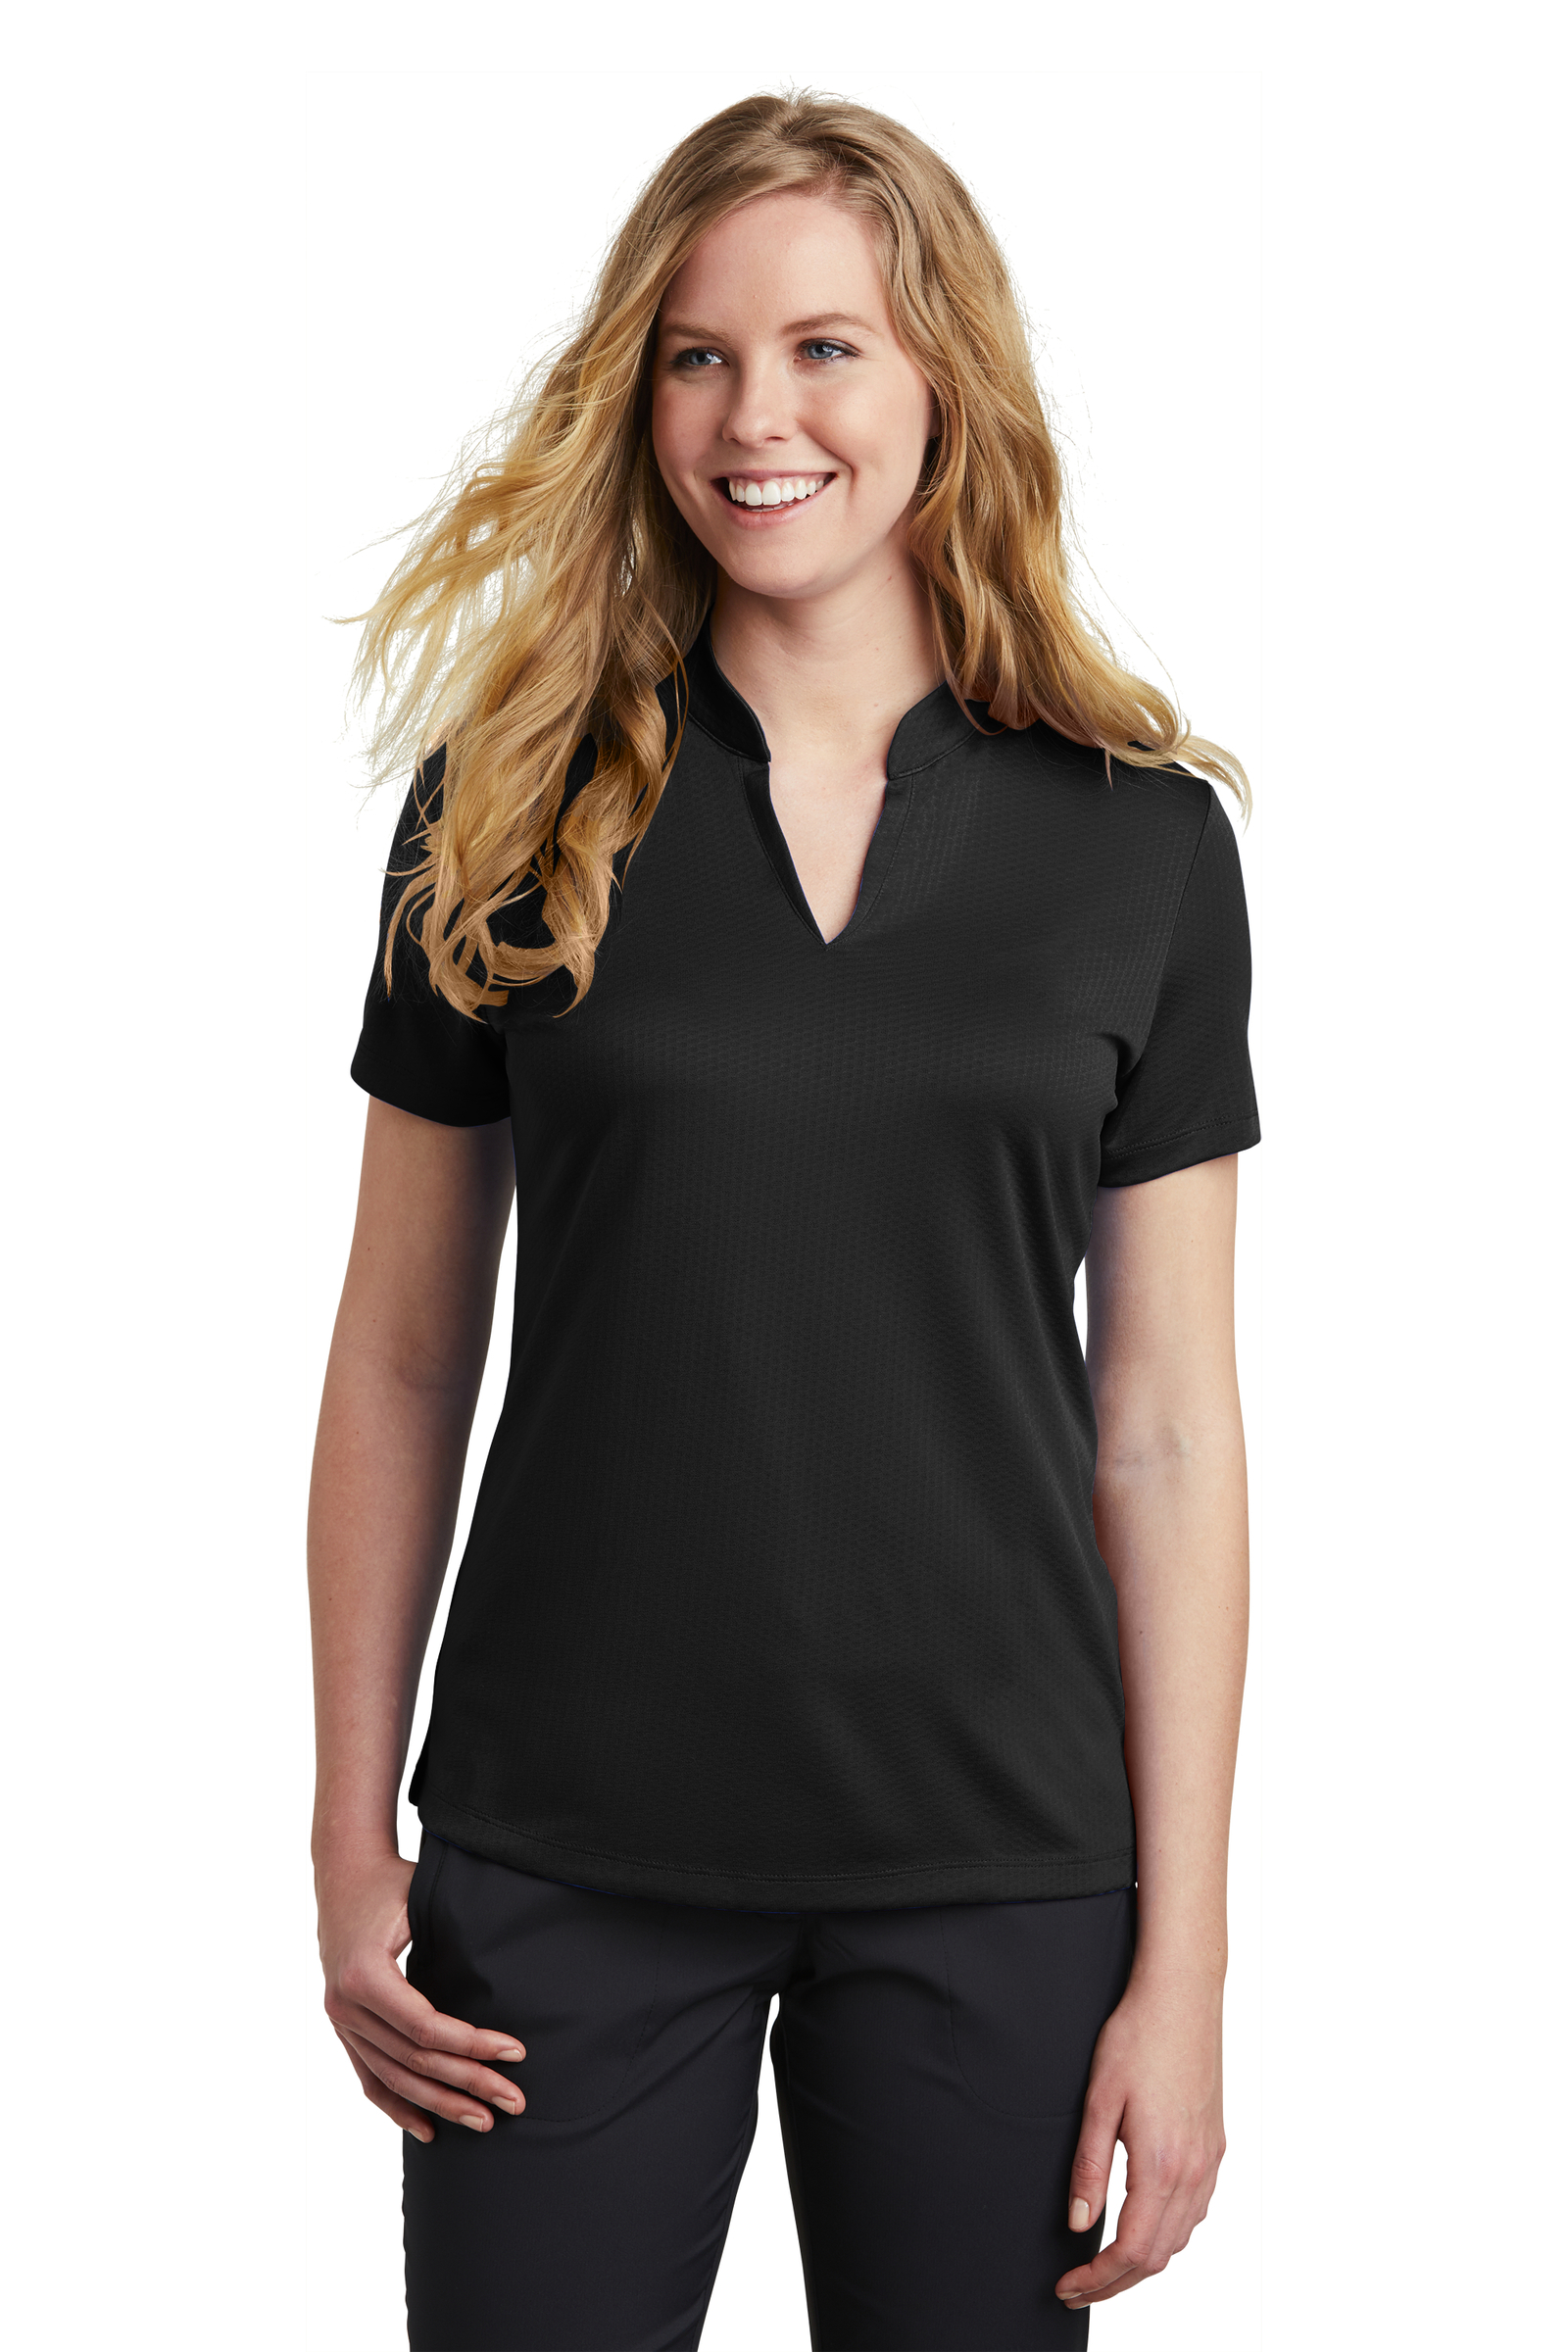 Nike Embroidered Women's Dri-FIT Hex Textured V-Neck Top